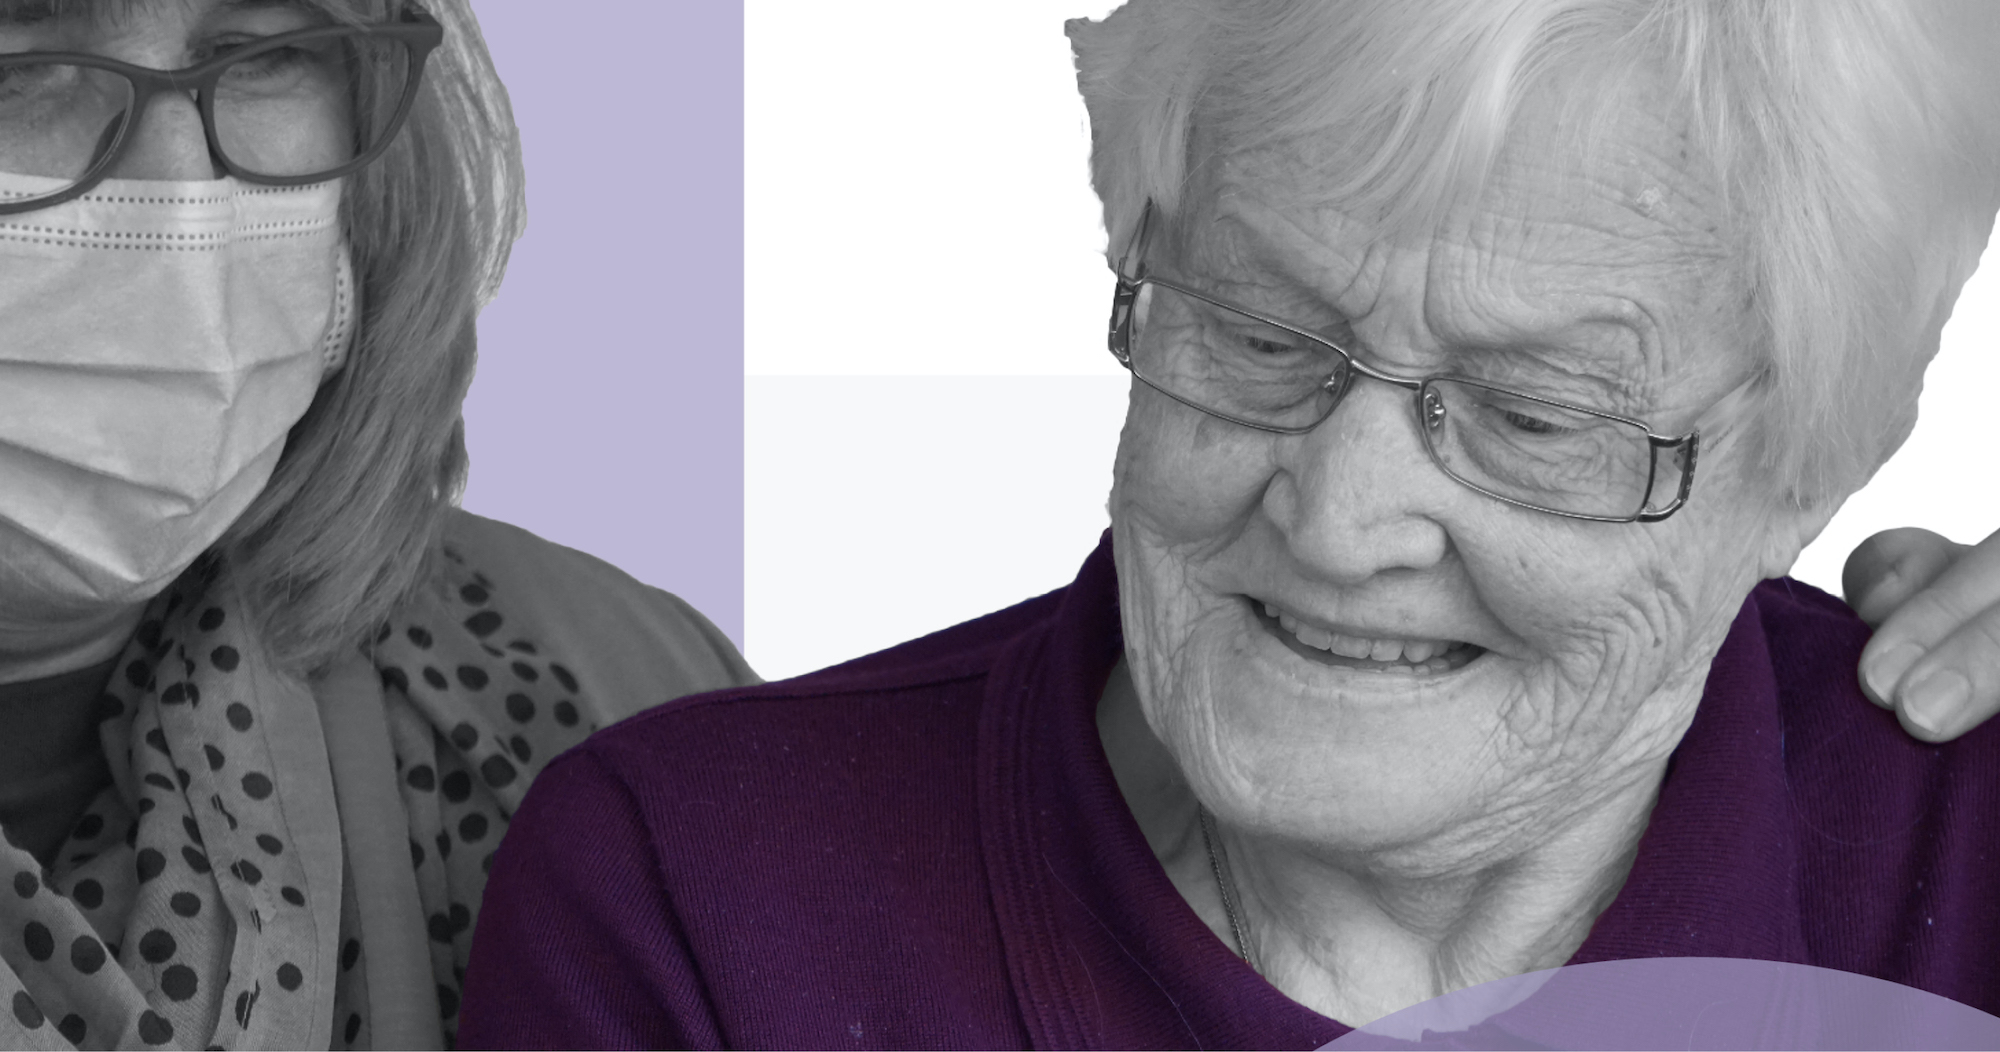 An older woman and a woman carer wearing a mask with shaded purple decoration